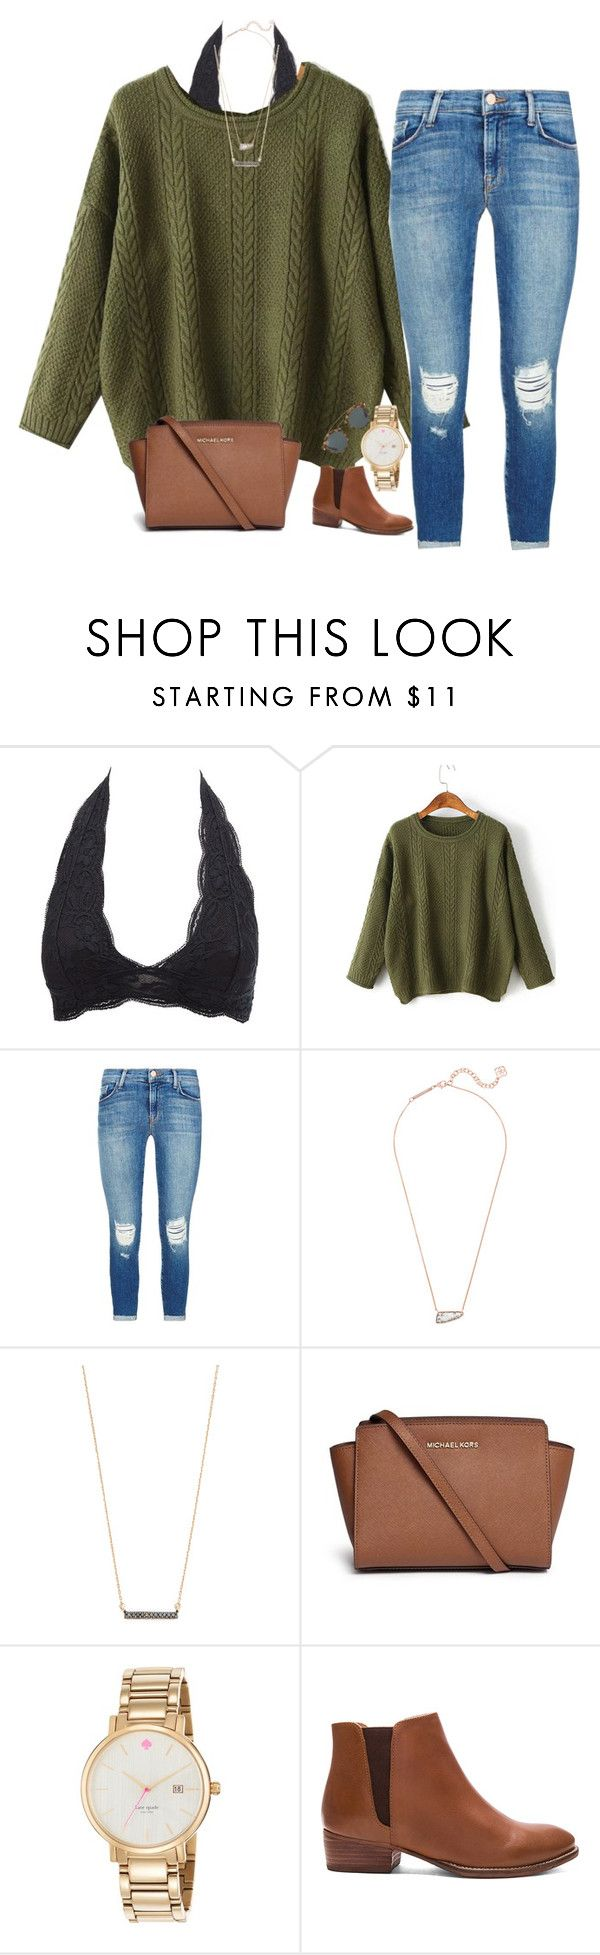 """""""hey poly. it's been awhile..."""" by isabella813 ❤ liked on Polyvore featuring Charlotte Russe, WithChic, J Brand, Kendra Scott, Adina Reyter, Michael Kors, Kate Spade, Seychelles and Ray-Ban"""